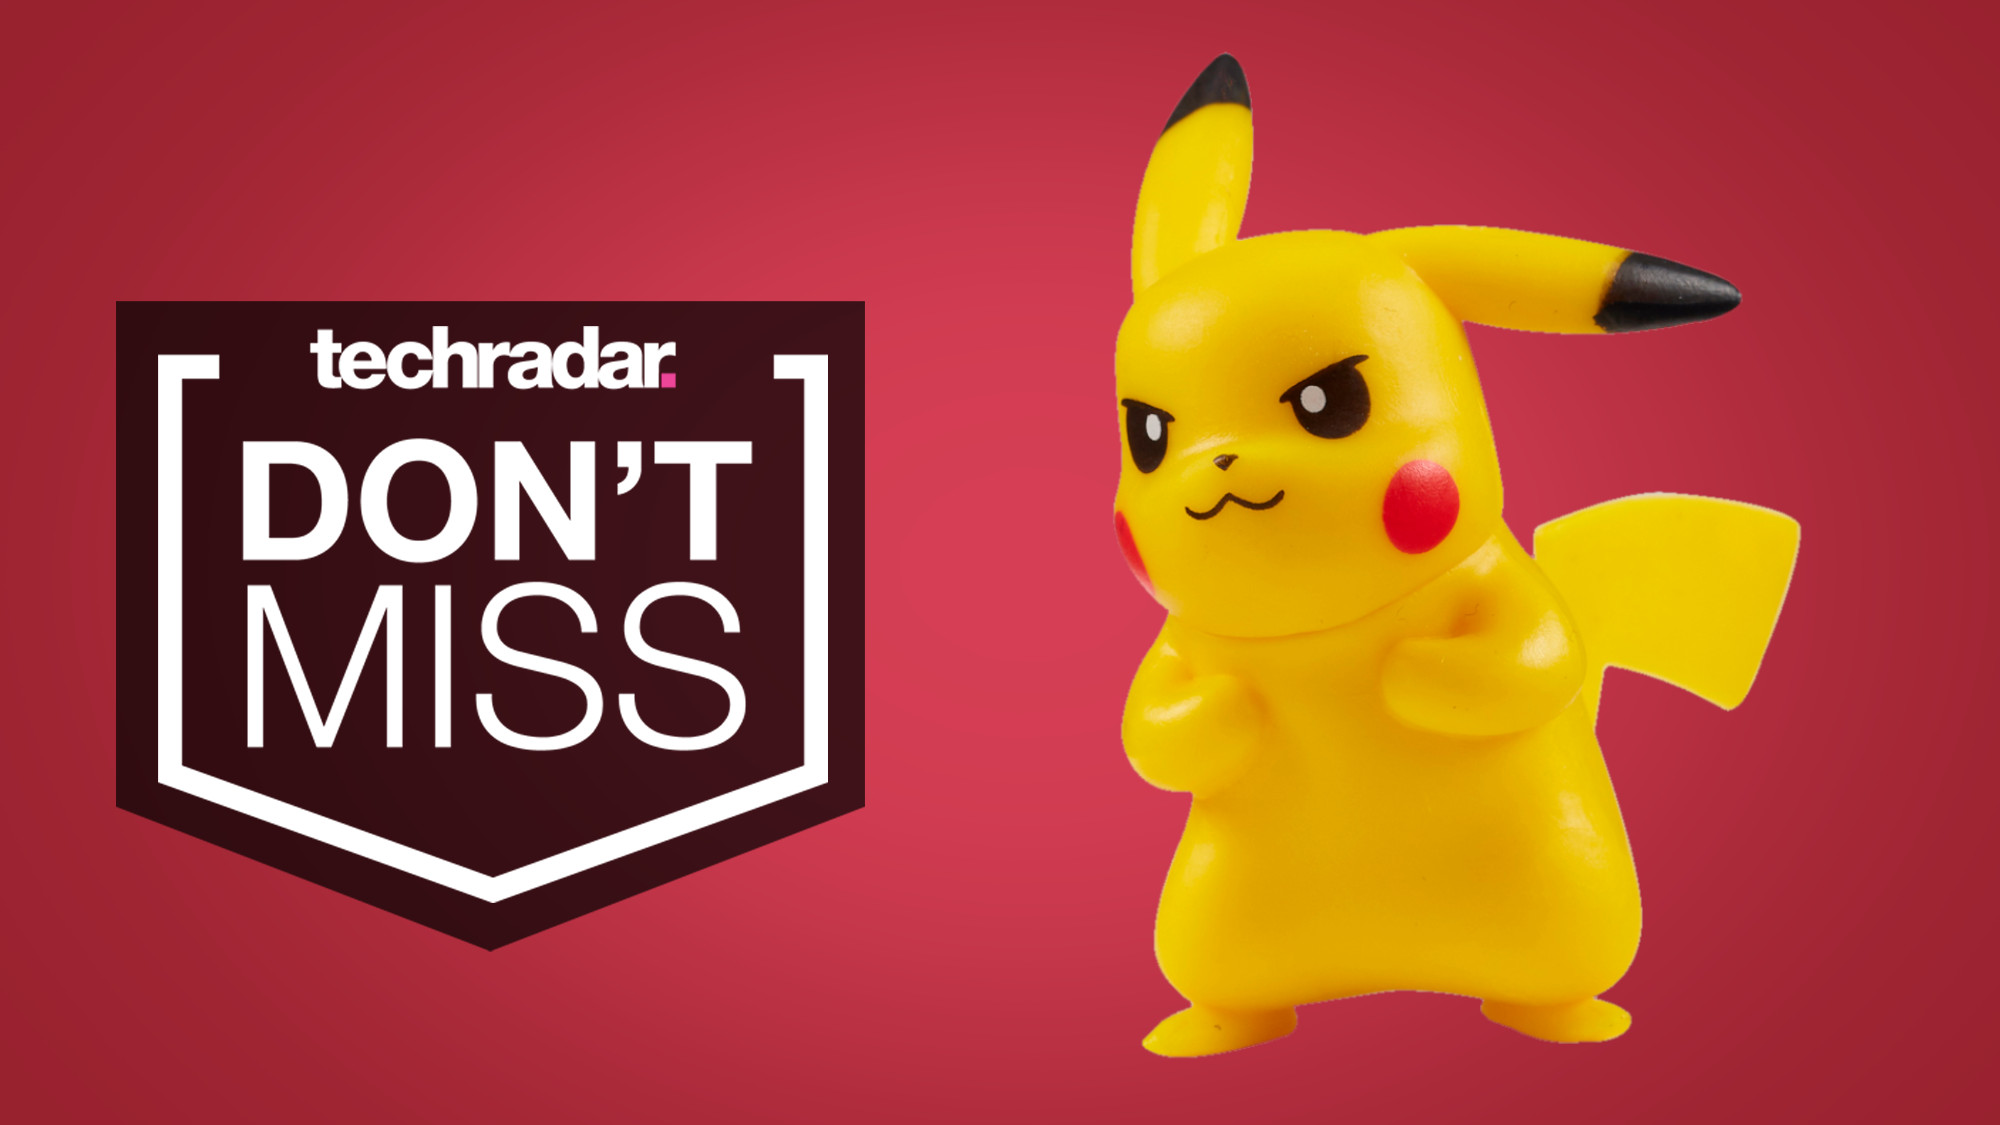 Get 20% off all Pokémon and Peppa Pig toys at Argos with this Black Friday code